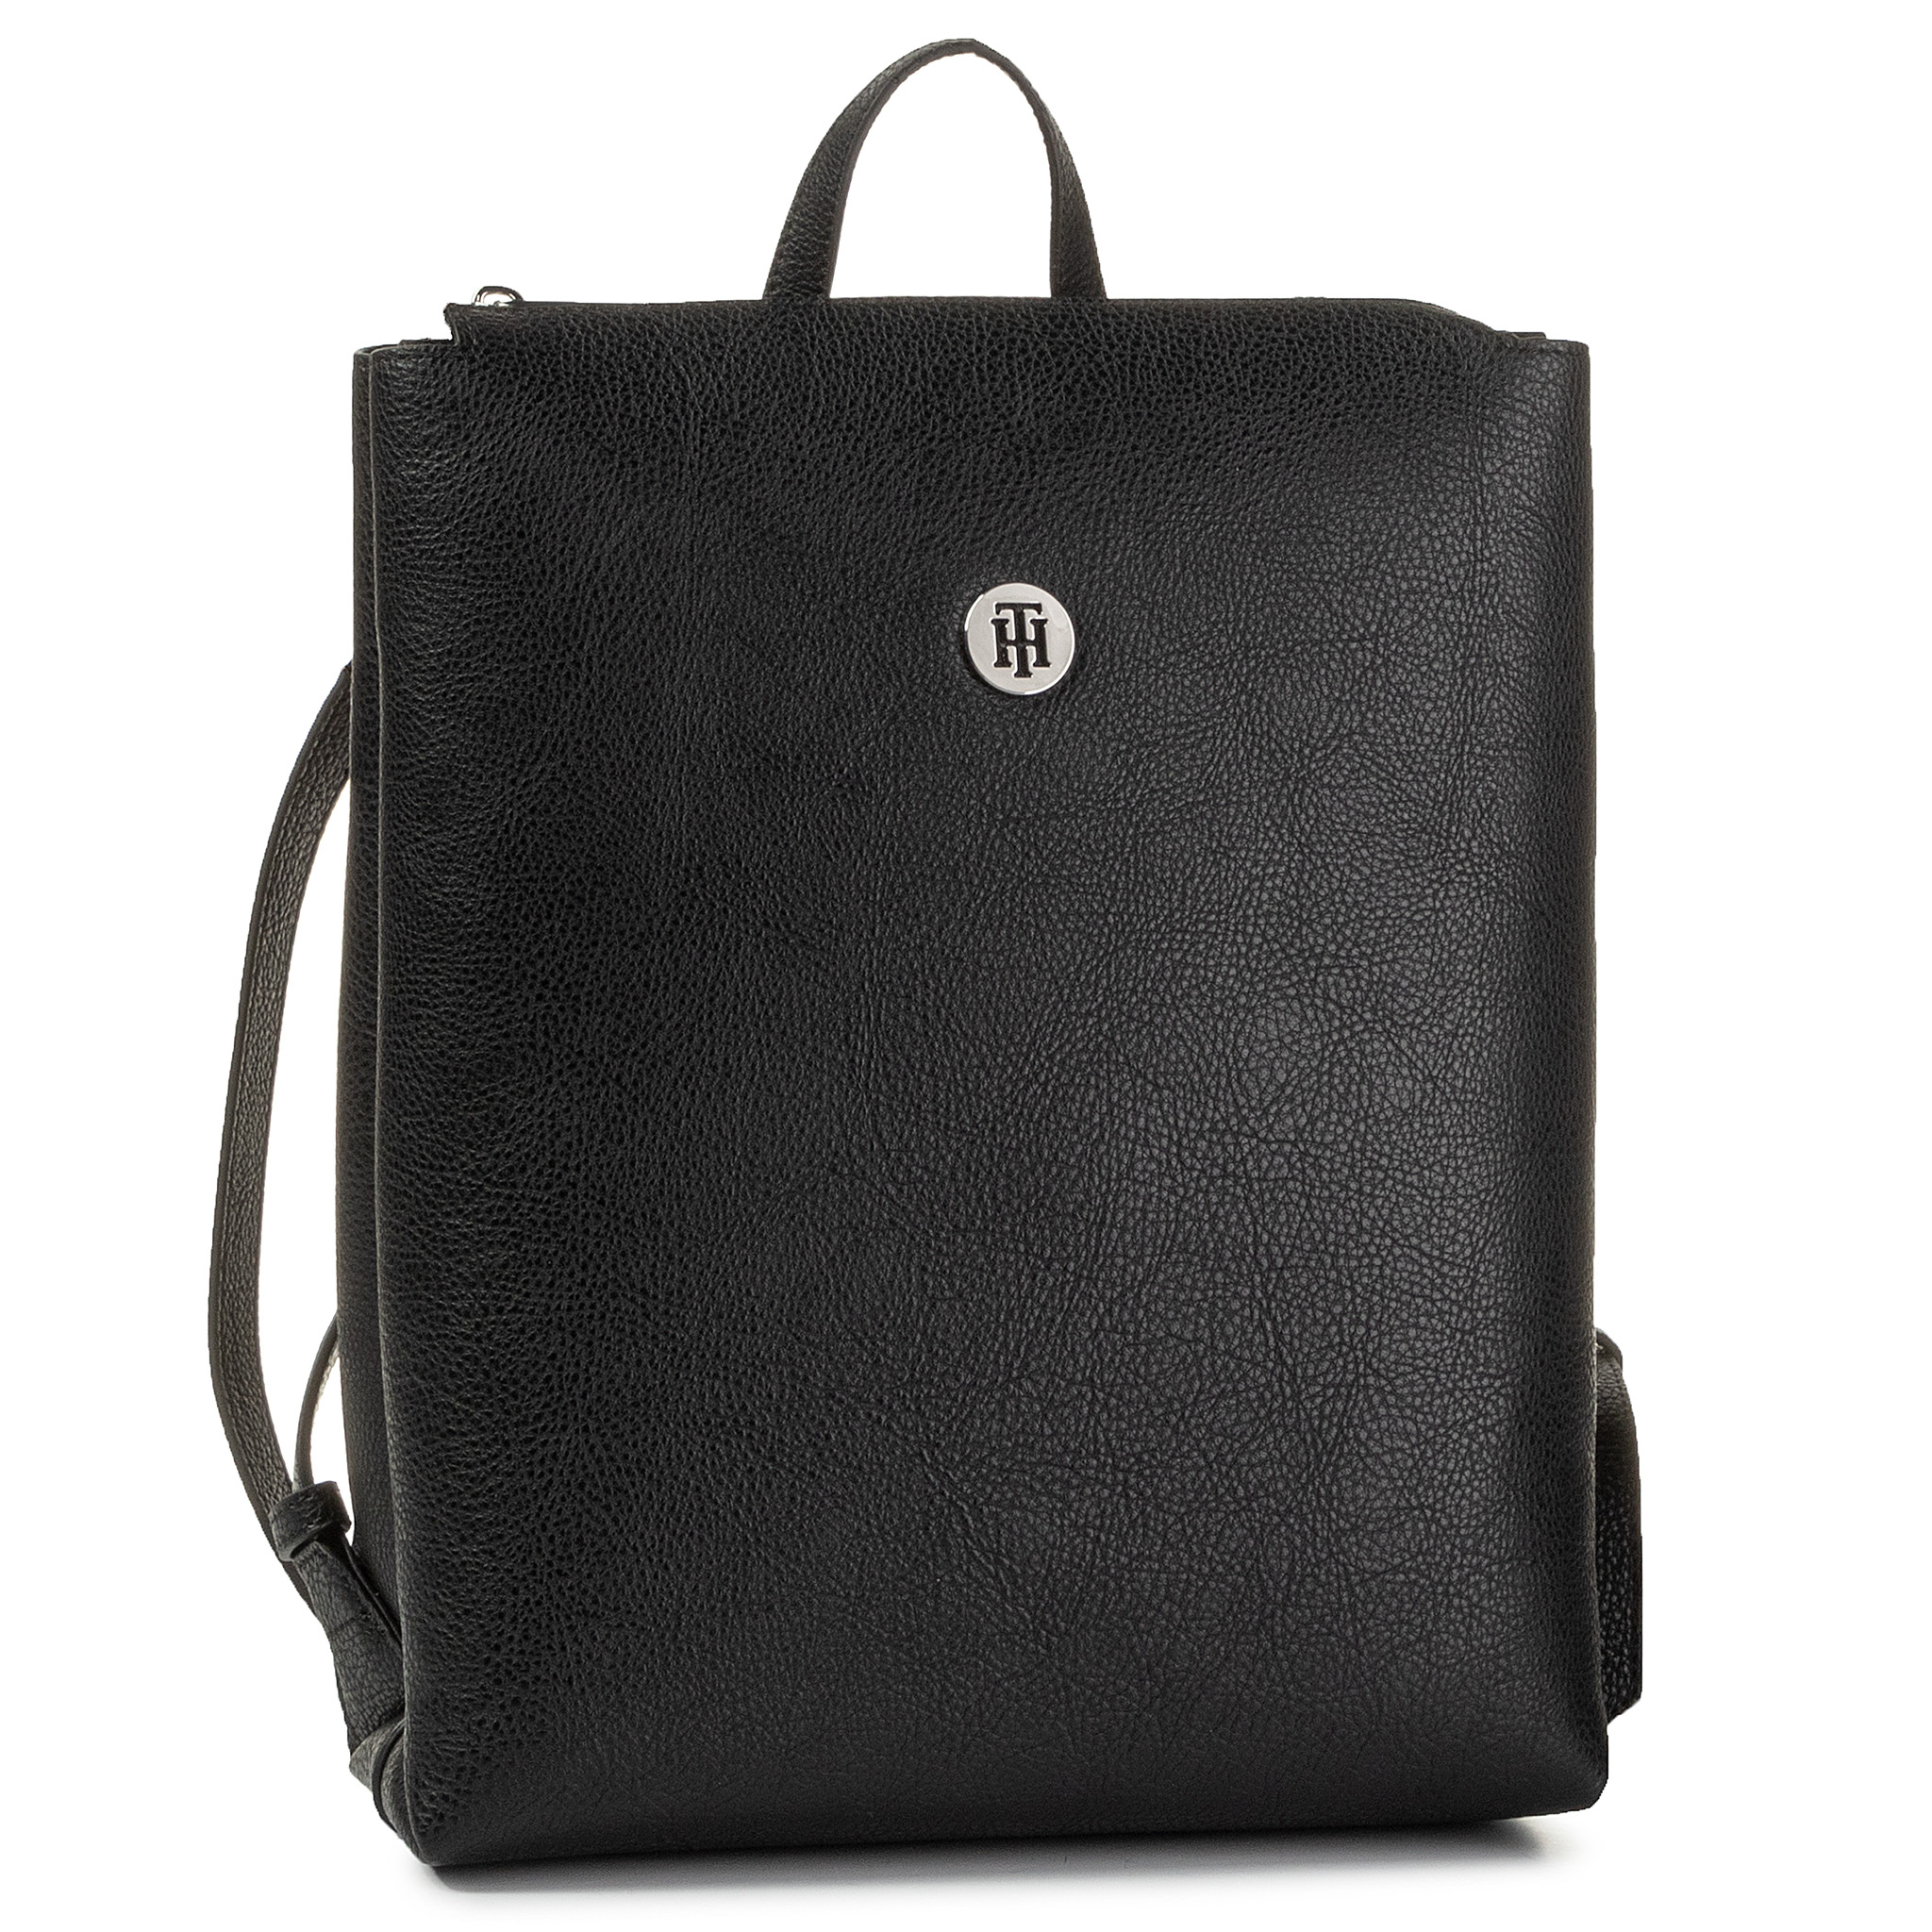 Rucsac Tommy Jeans - Th Core Backpack Aw0aw07682 Bds imagine epantofi.ro 2021